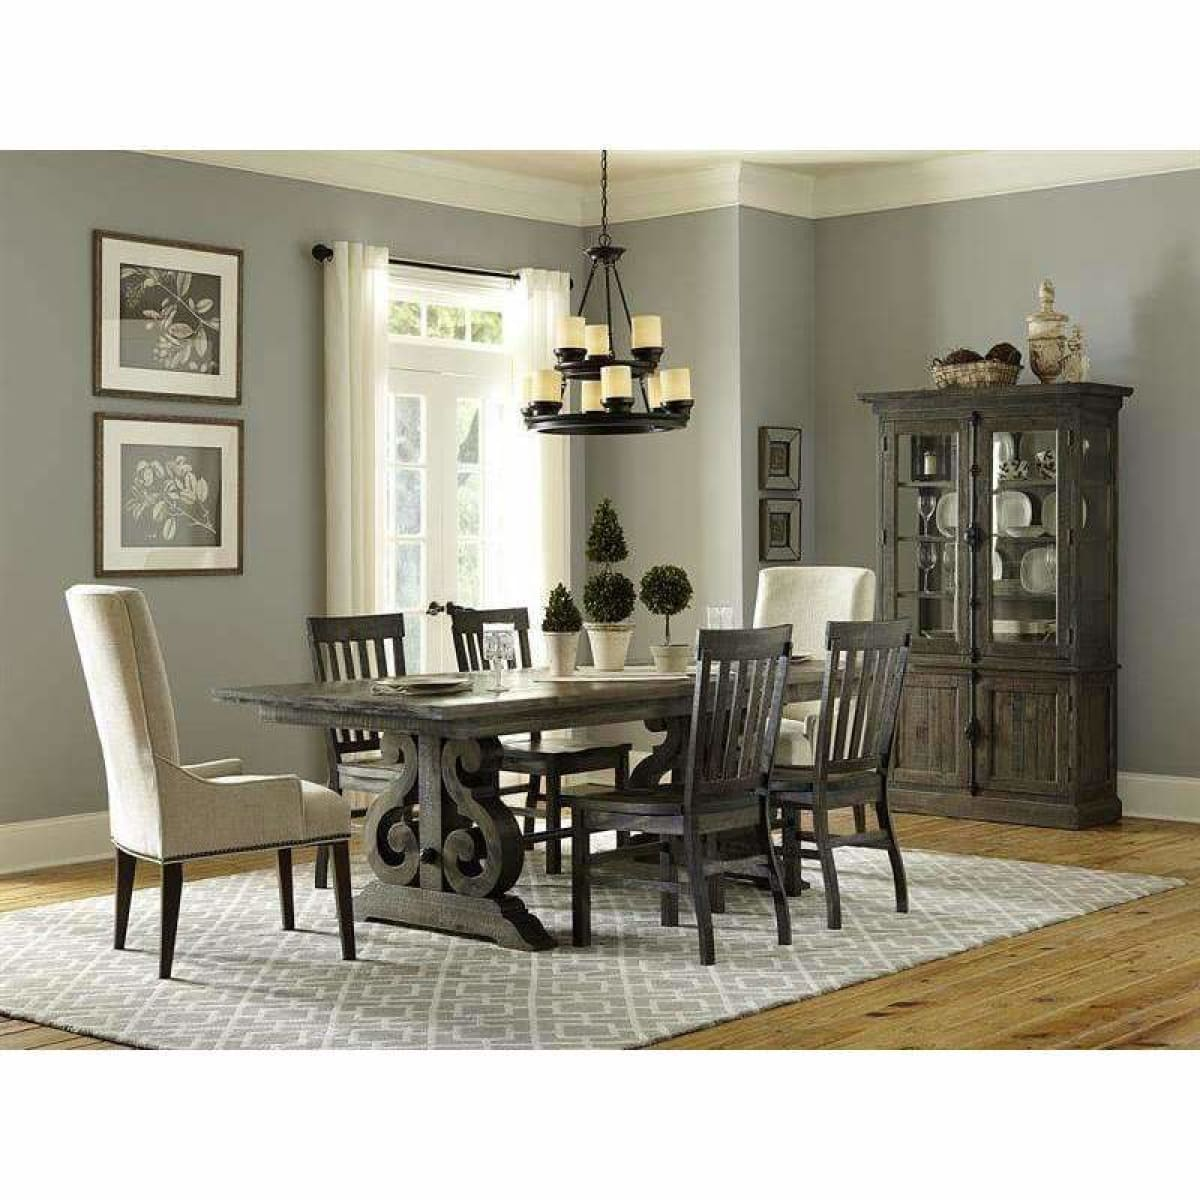 Bellamy Rectangular Dining Table - DININGCOUNTERHEIGHT